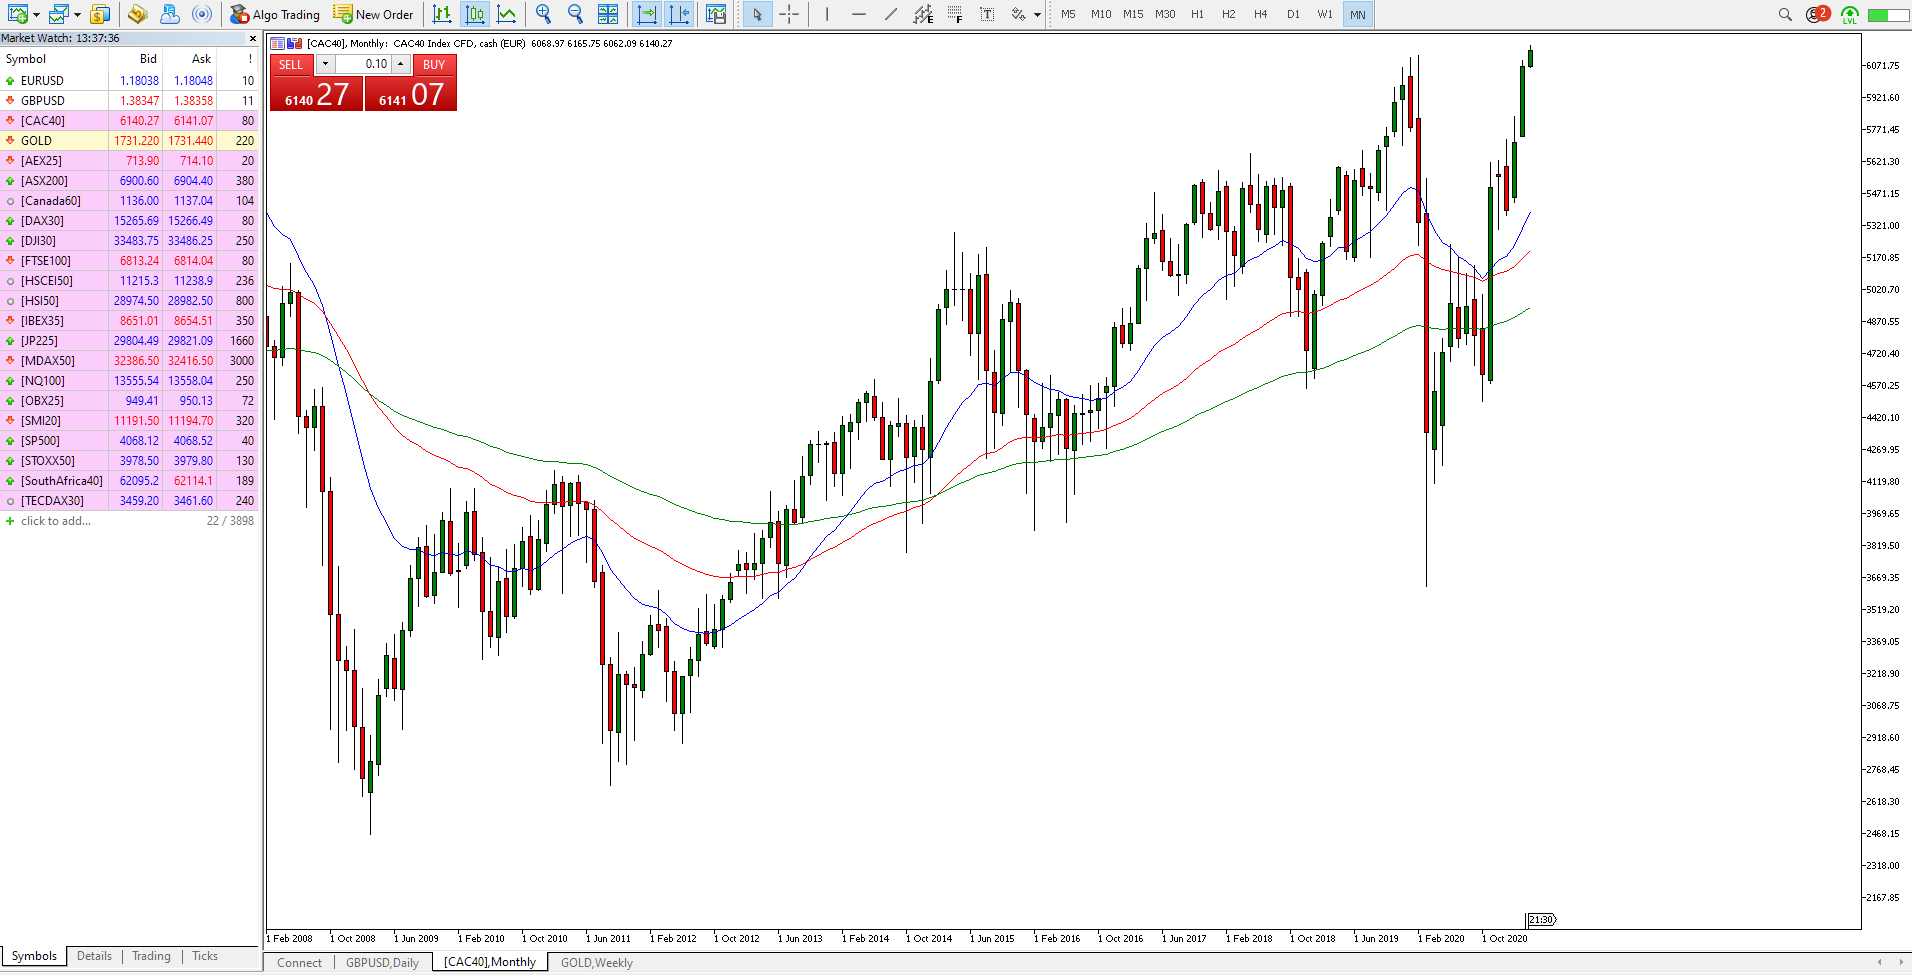 CAC 40 Index Live Price Chart MT5